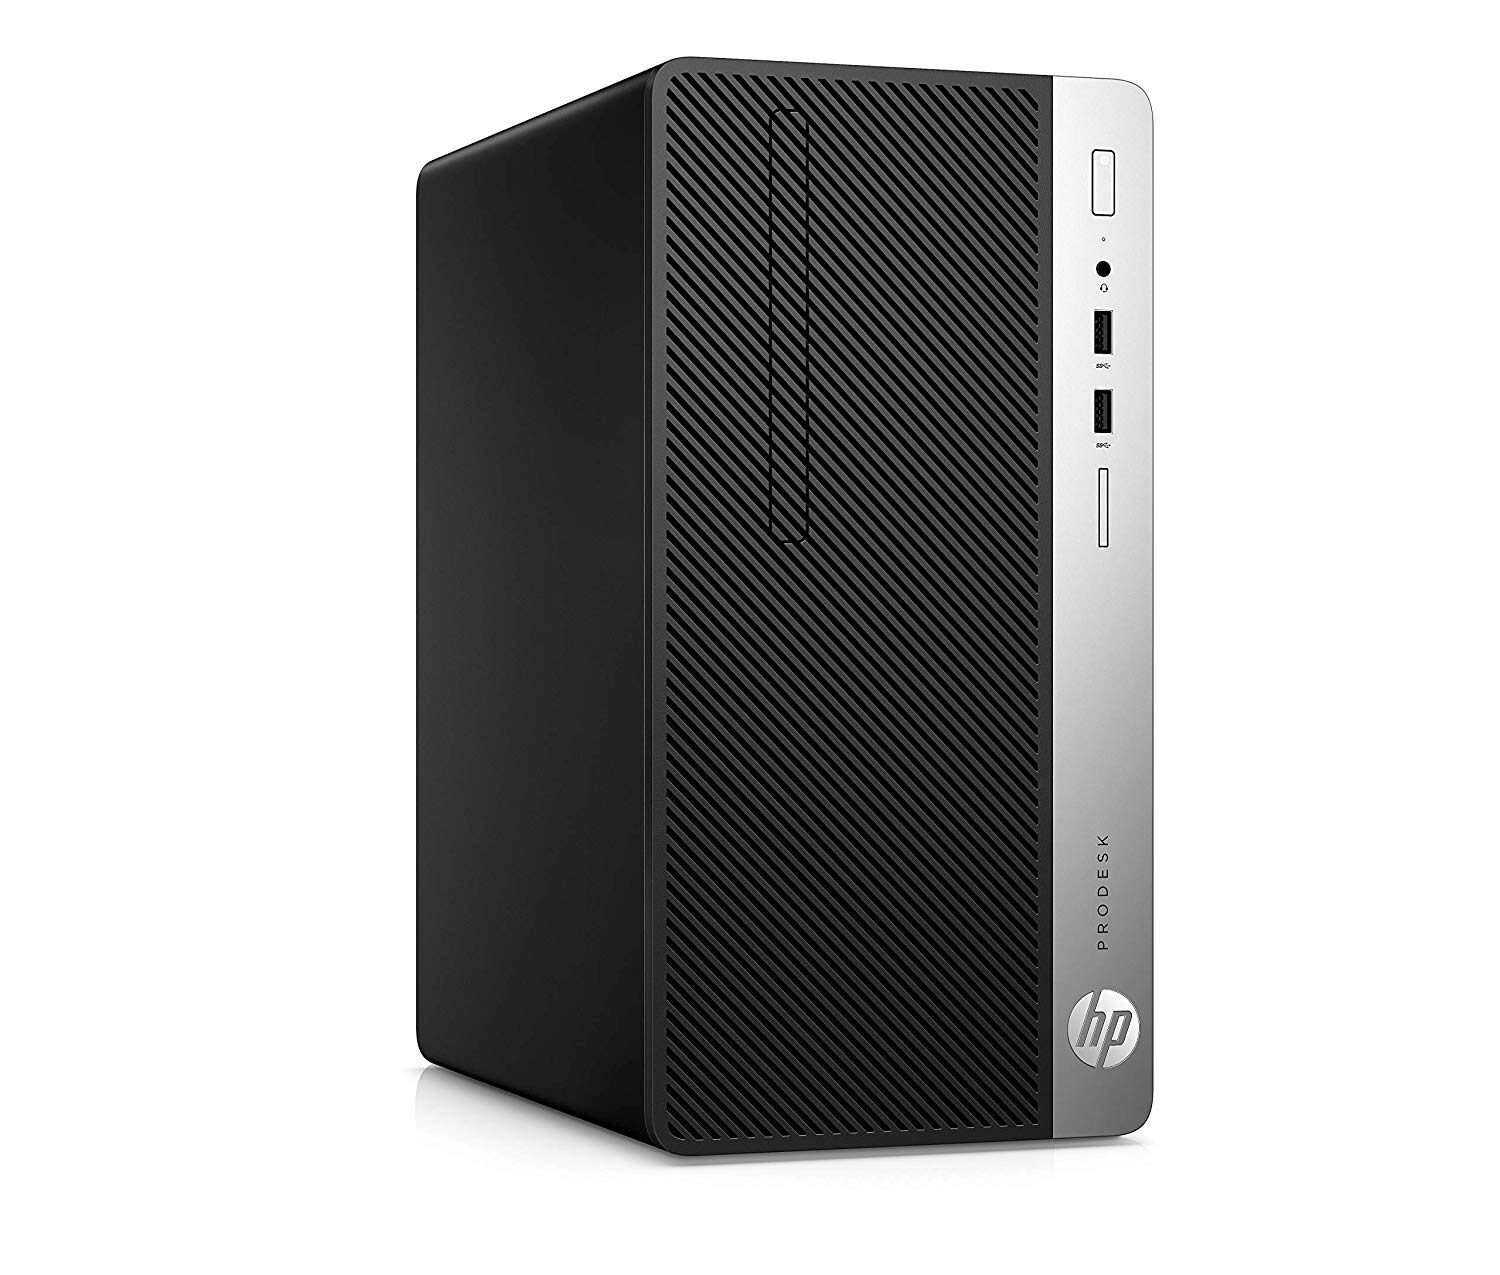 HP ProDesk 400 G5 MT - Ordenador de sobremesa profesional (Intel Core i5-8500, 8GB RAM, 1TB HDD, Intel Graphics, Windows 10 Pro) Negro - Teclado QWERTY Español y ratón